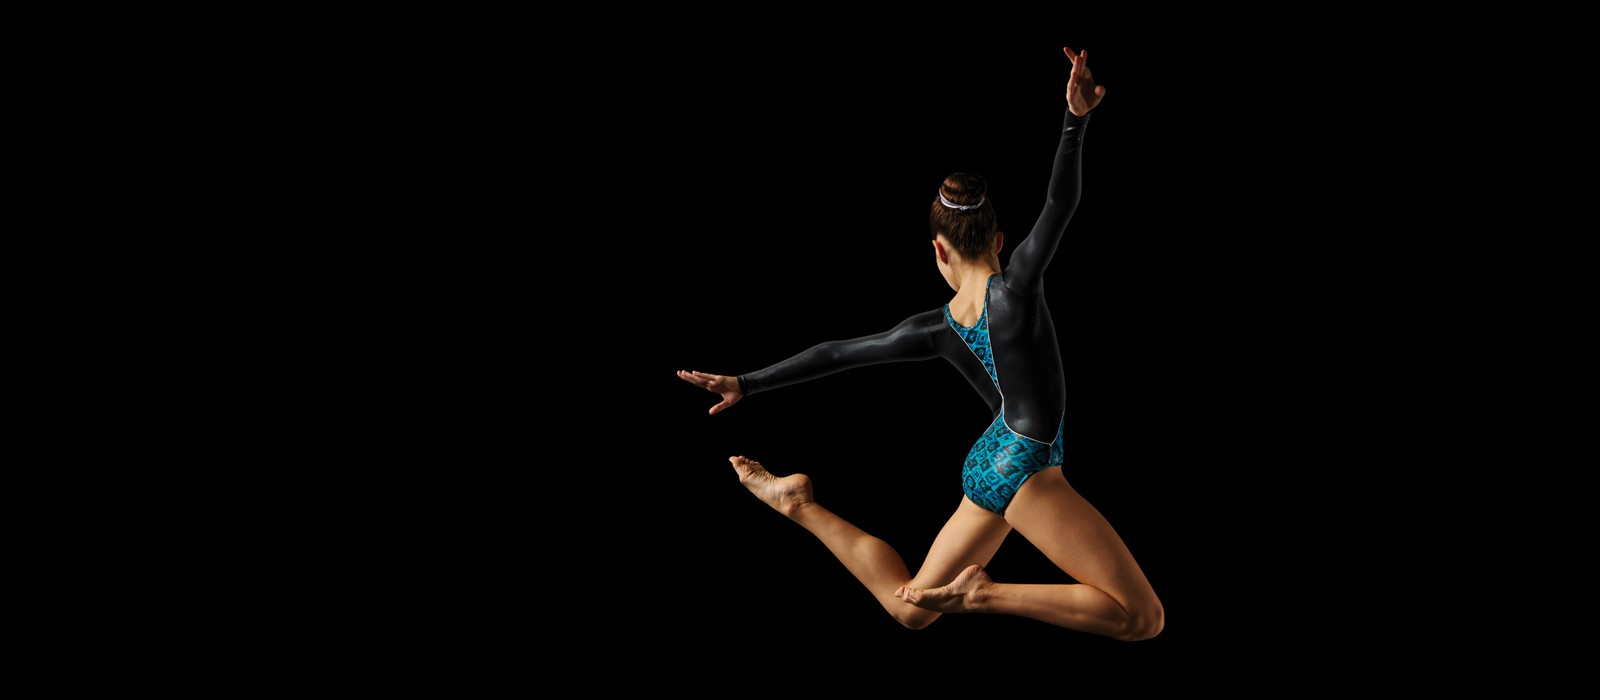 image - View our stunning collection of leotards, unitards, tops & shorts.